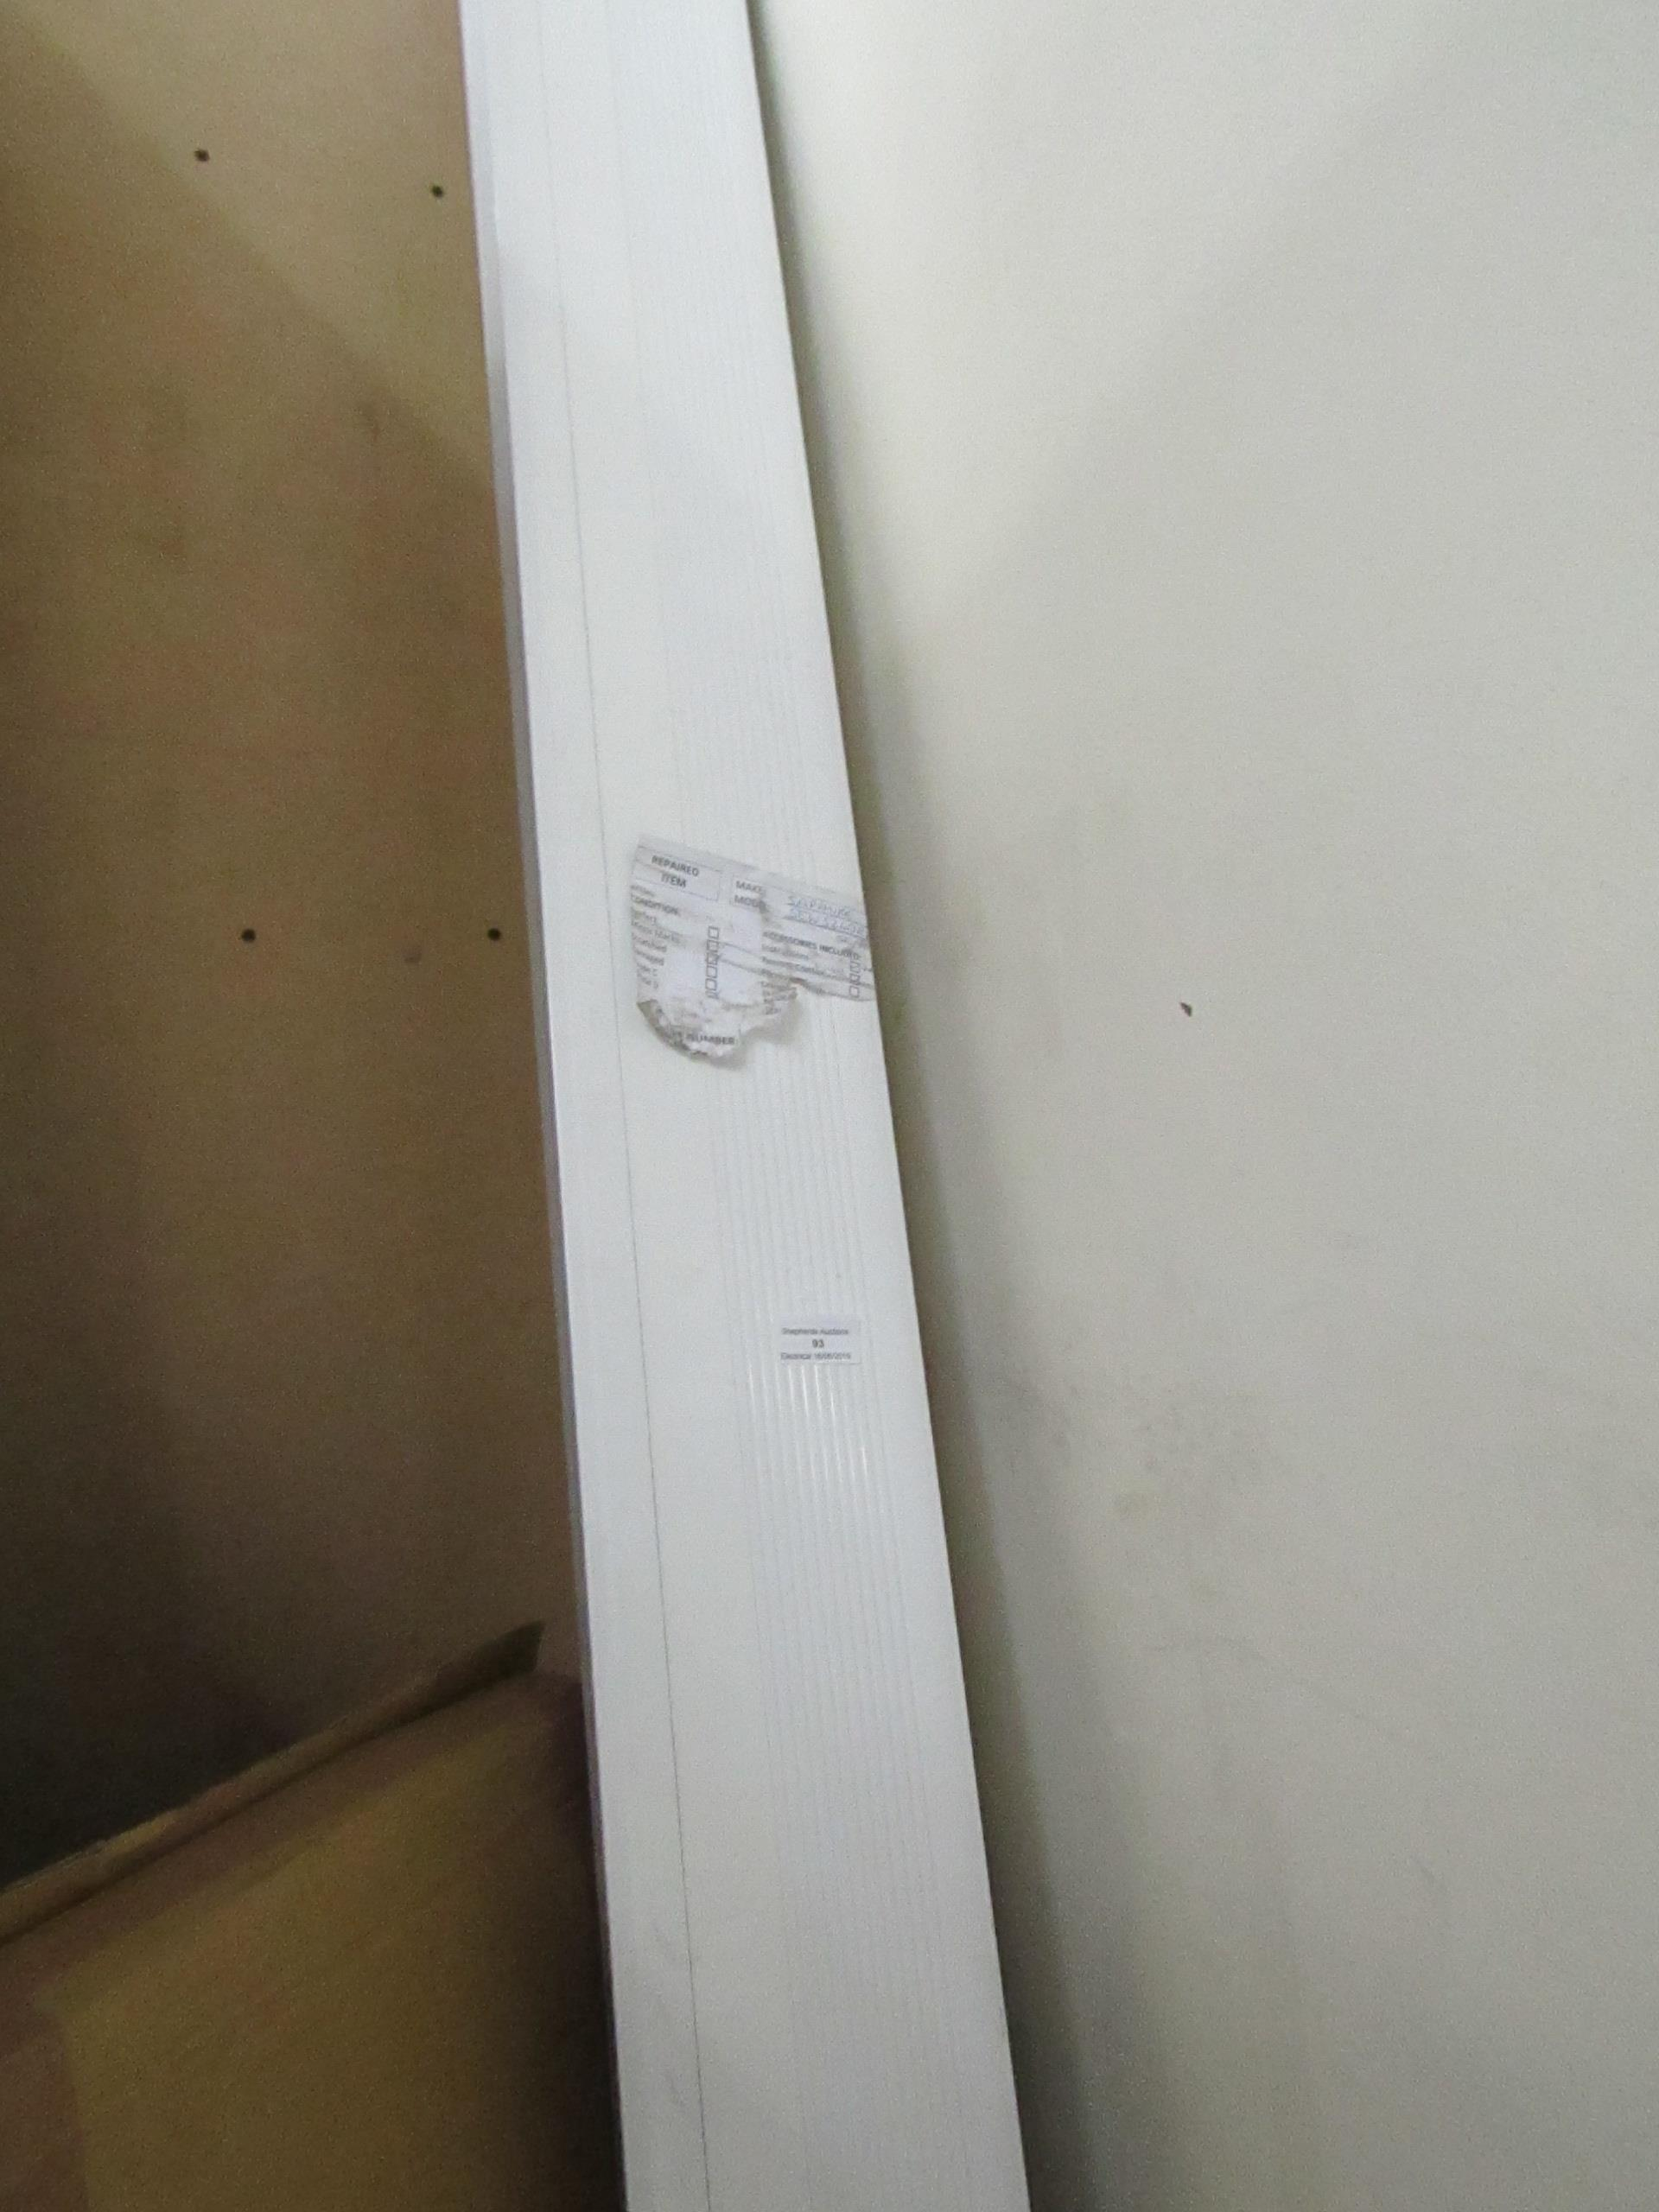 Lot 93 - Sapphire SEW5240 electric projector screen, RRP £361 tested working.